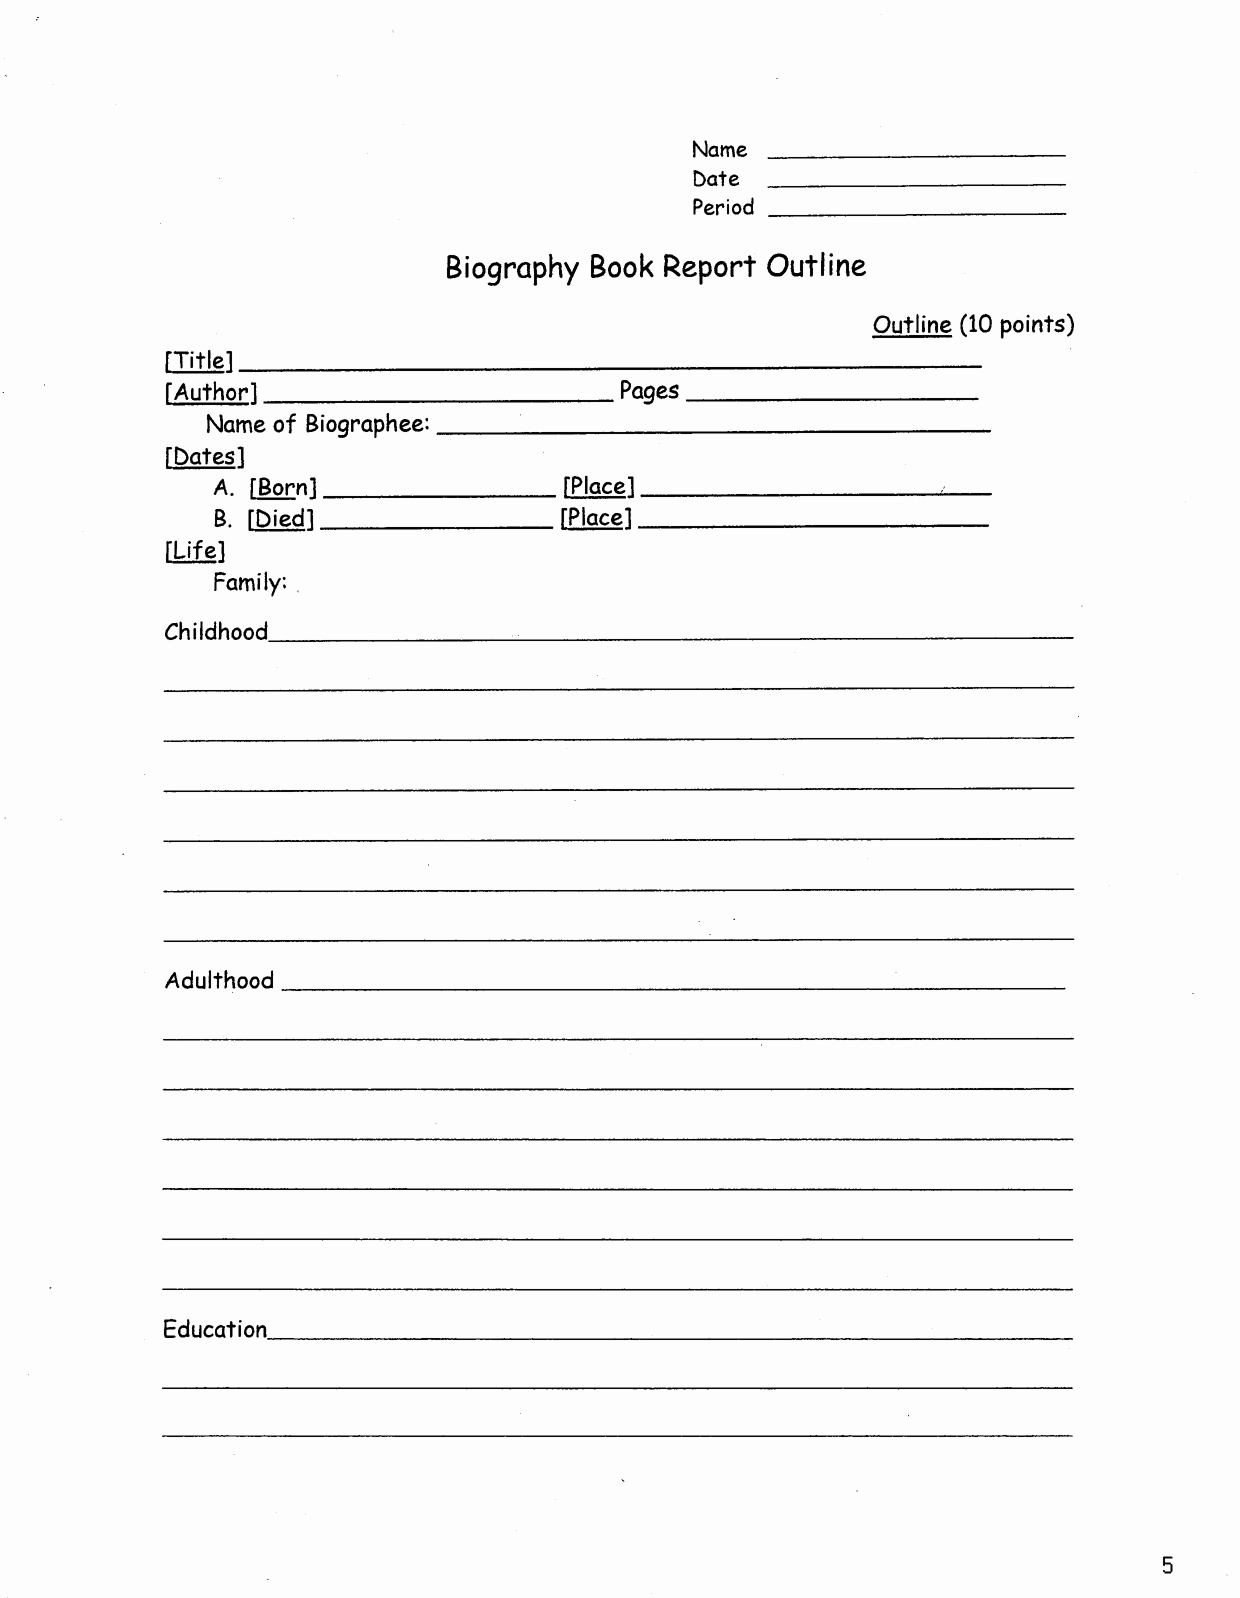 Biography Book Report Template Inspirational Biography Book Report Outline Book Reports